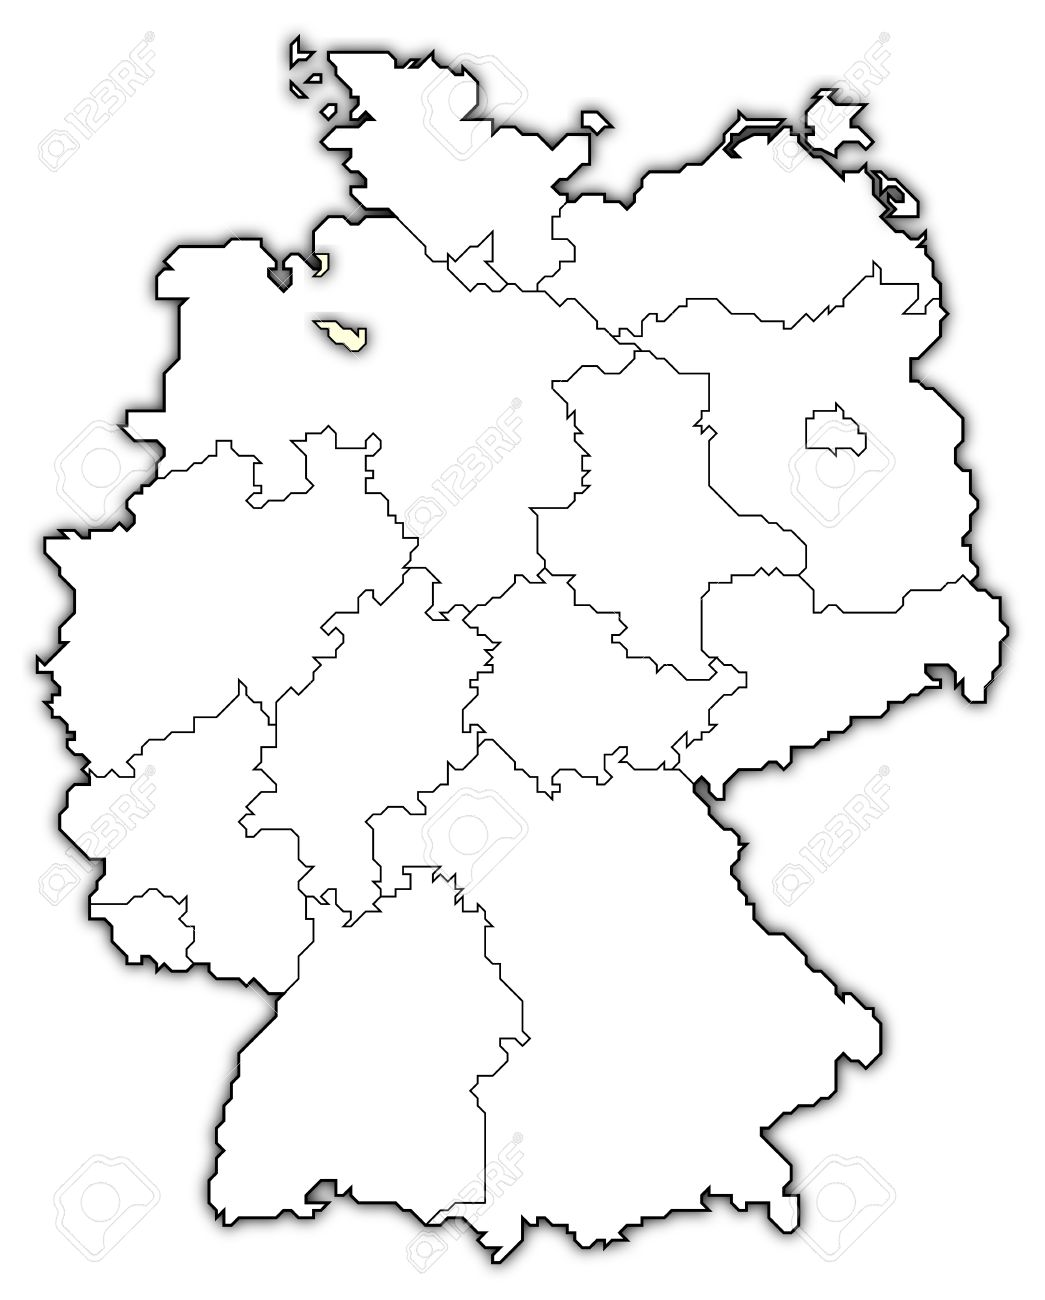 Germany Map Bremen Highlights Stock Photo Picture And Royalty